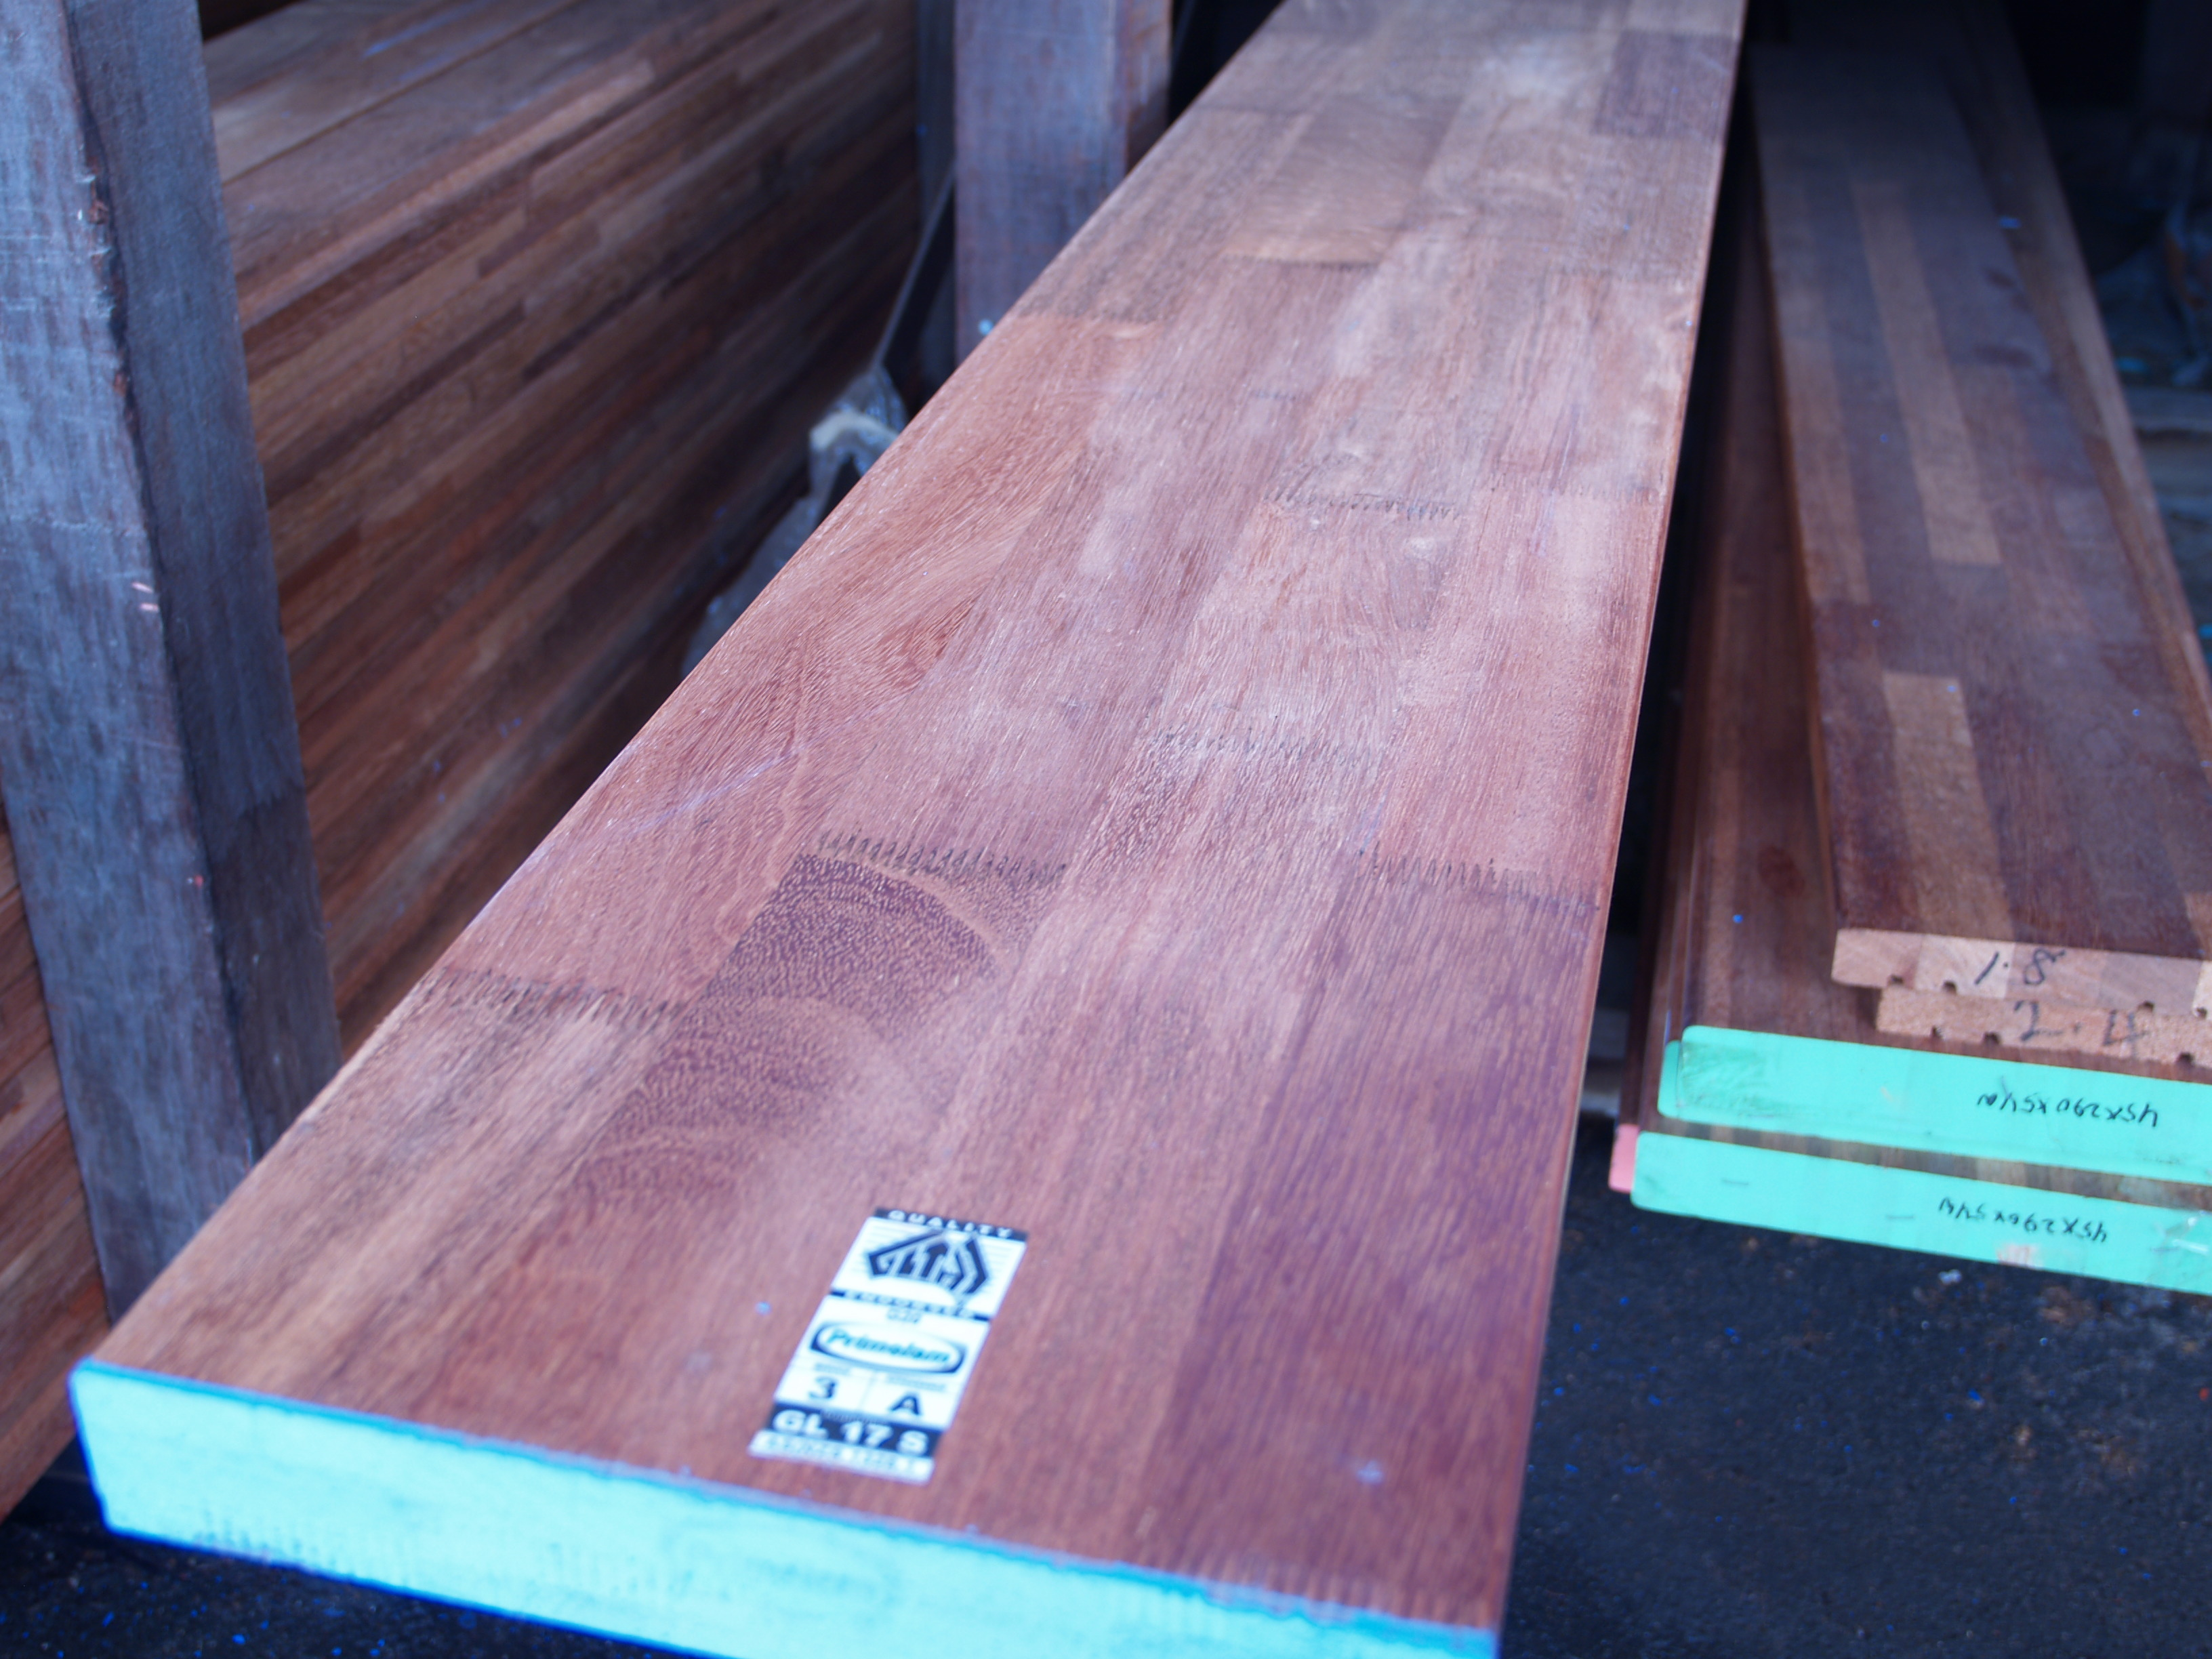 Perth Glulam Hardwood Glulam Laminated Beams Perth